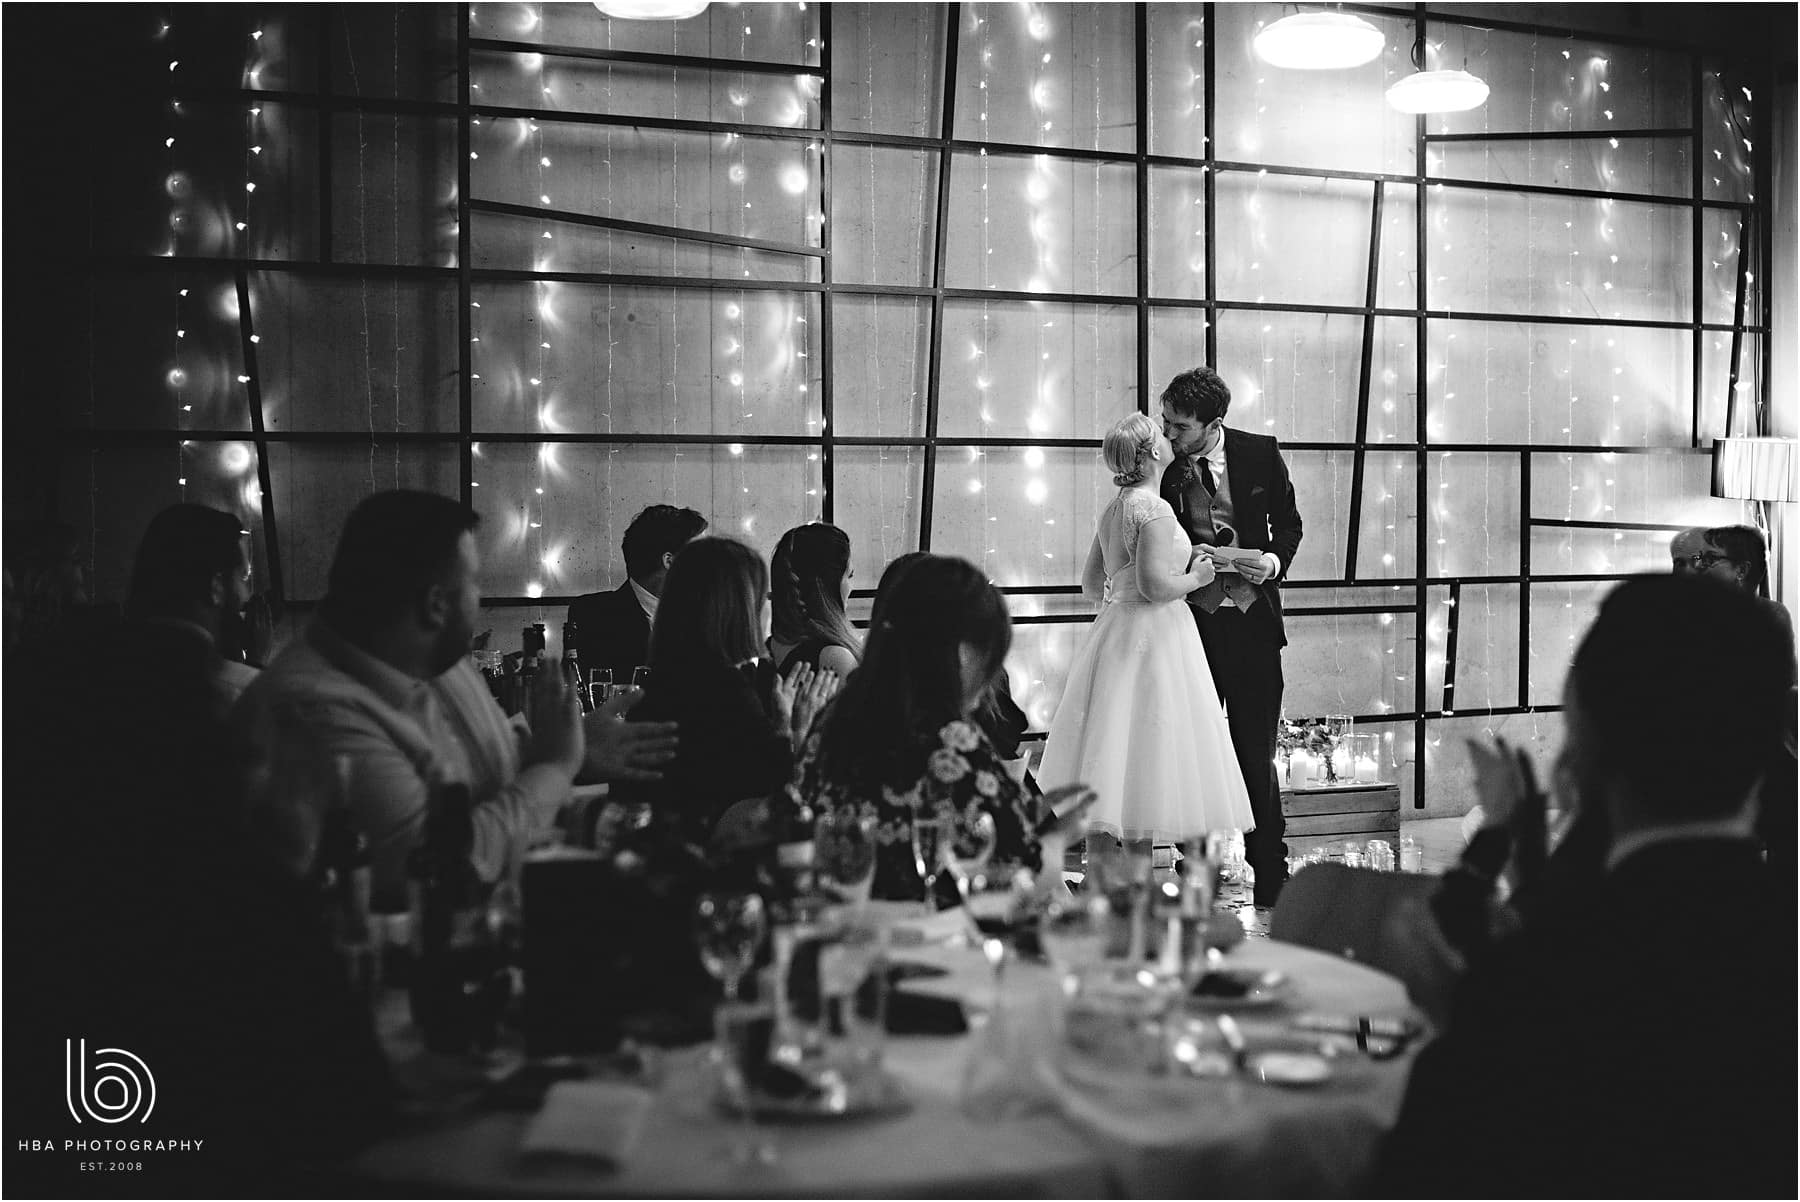 The bride and groom kissing during their wedding speech in black-and-white